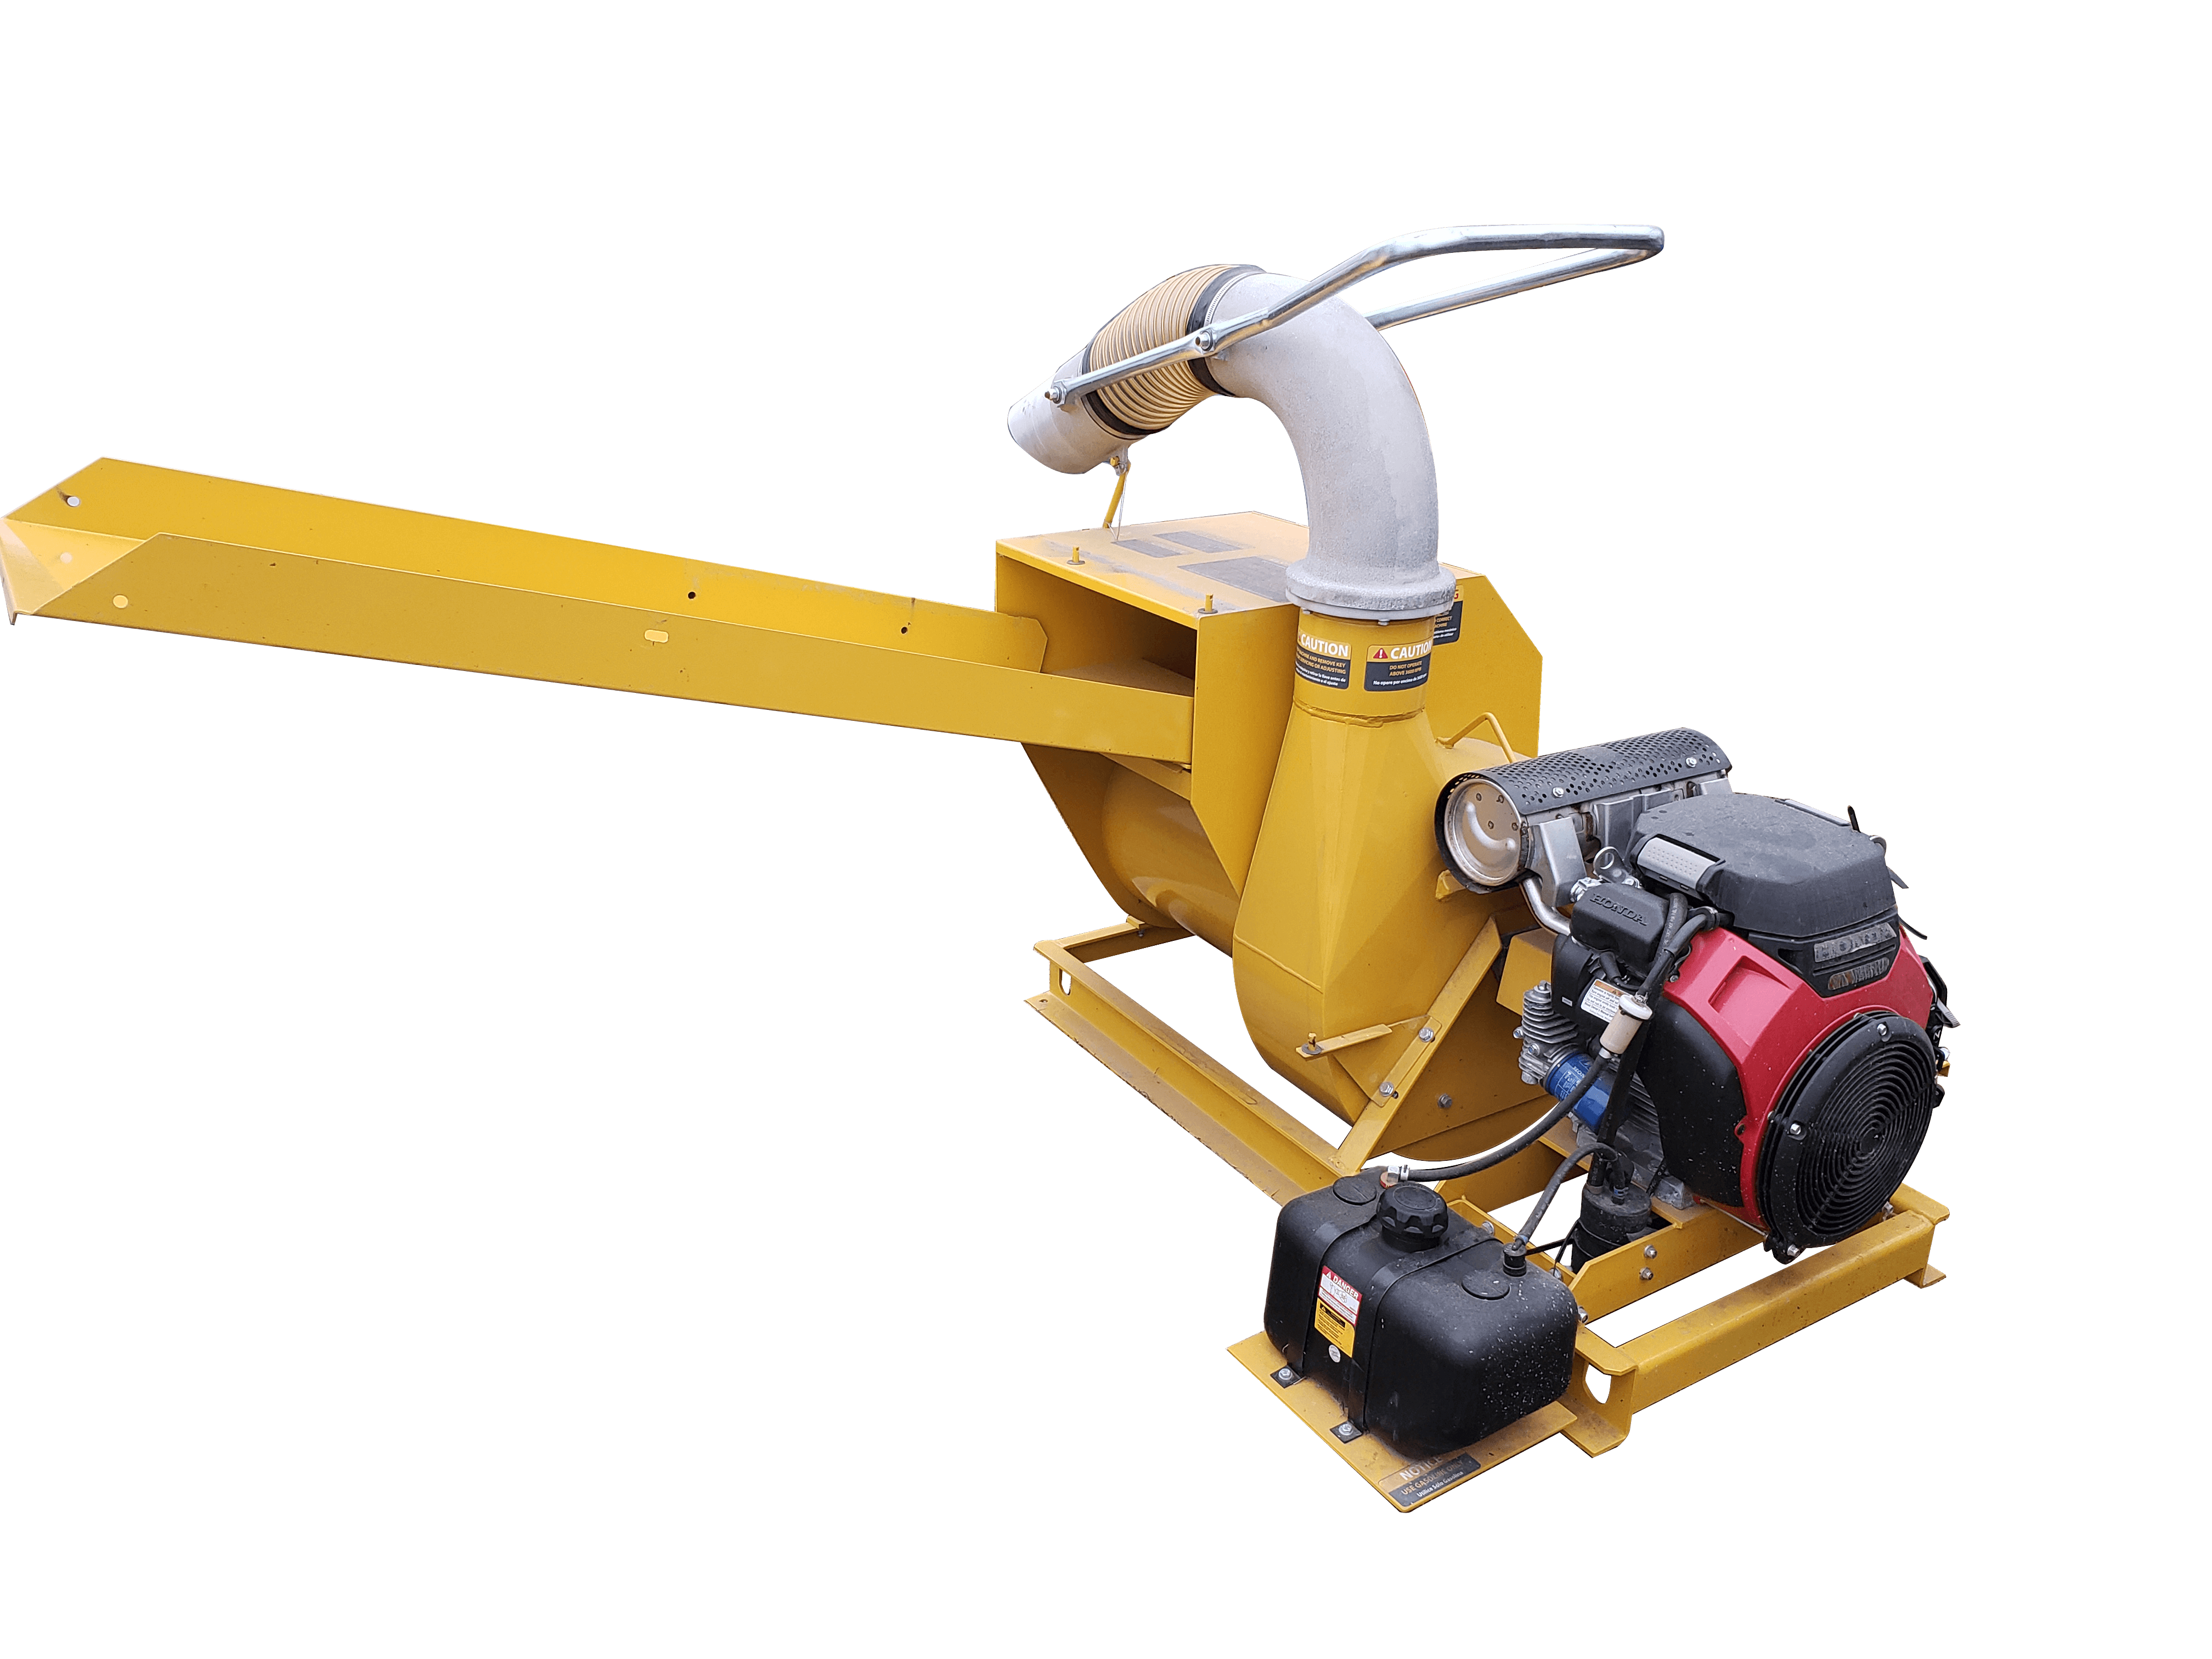 2346_20191003-080516 Powermulcher For Sale |TMJr | Perfect For Small Hydromulching Jobs